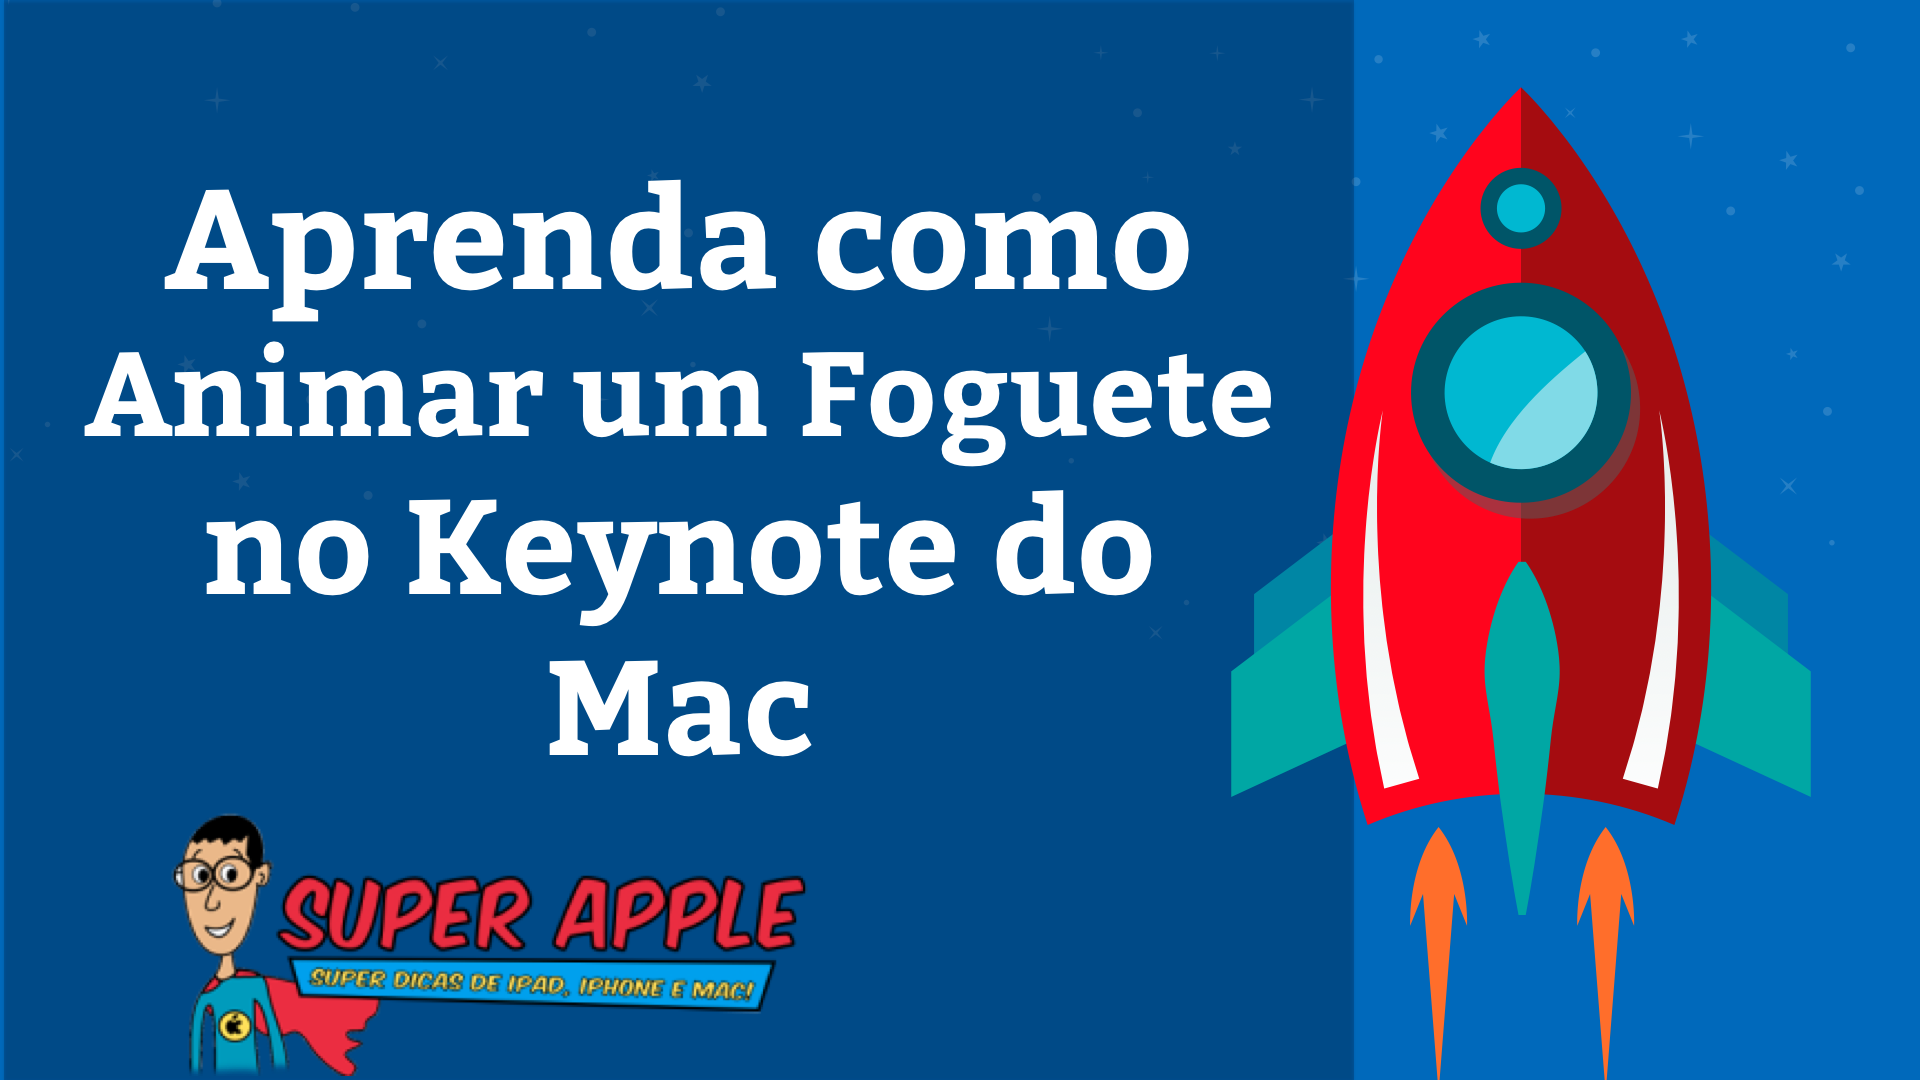 Aprenda Como Animar um Foguete no Keynote do Mac